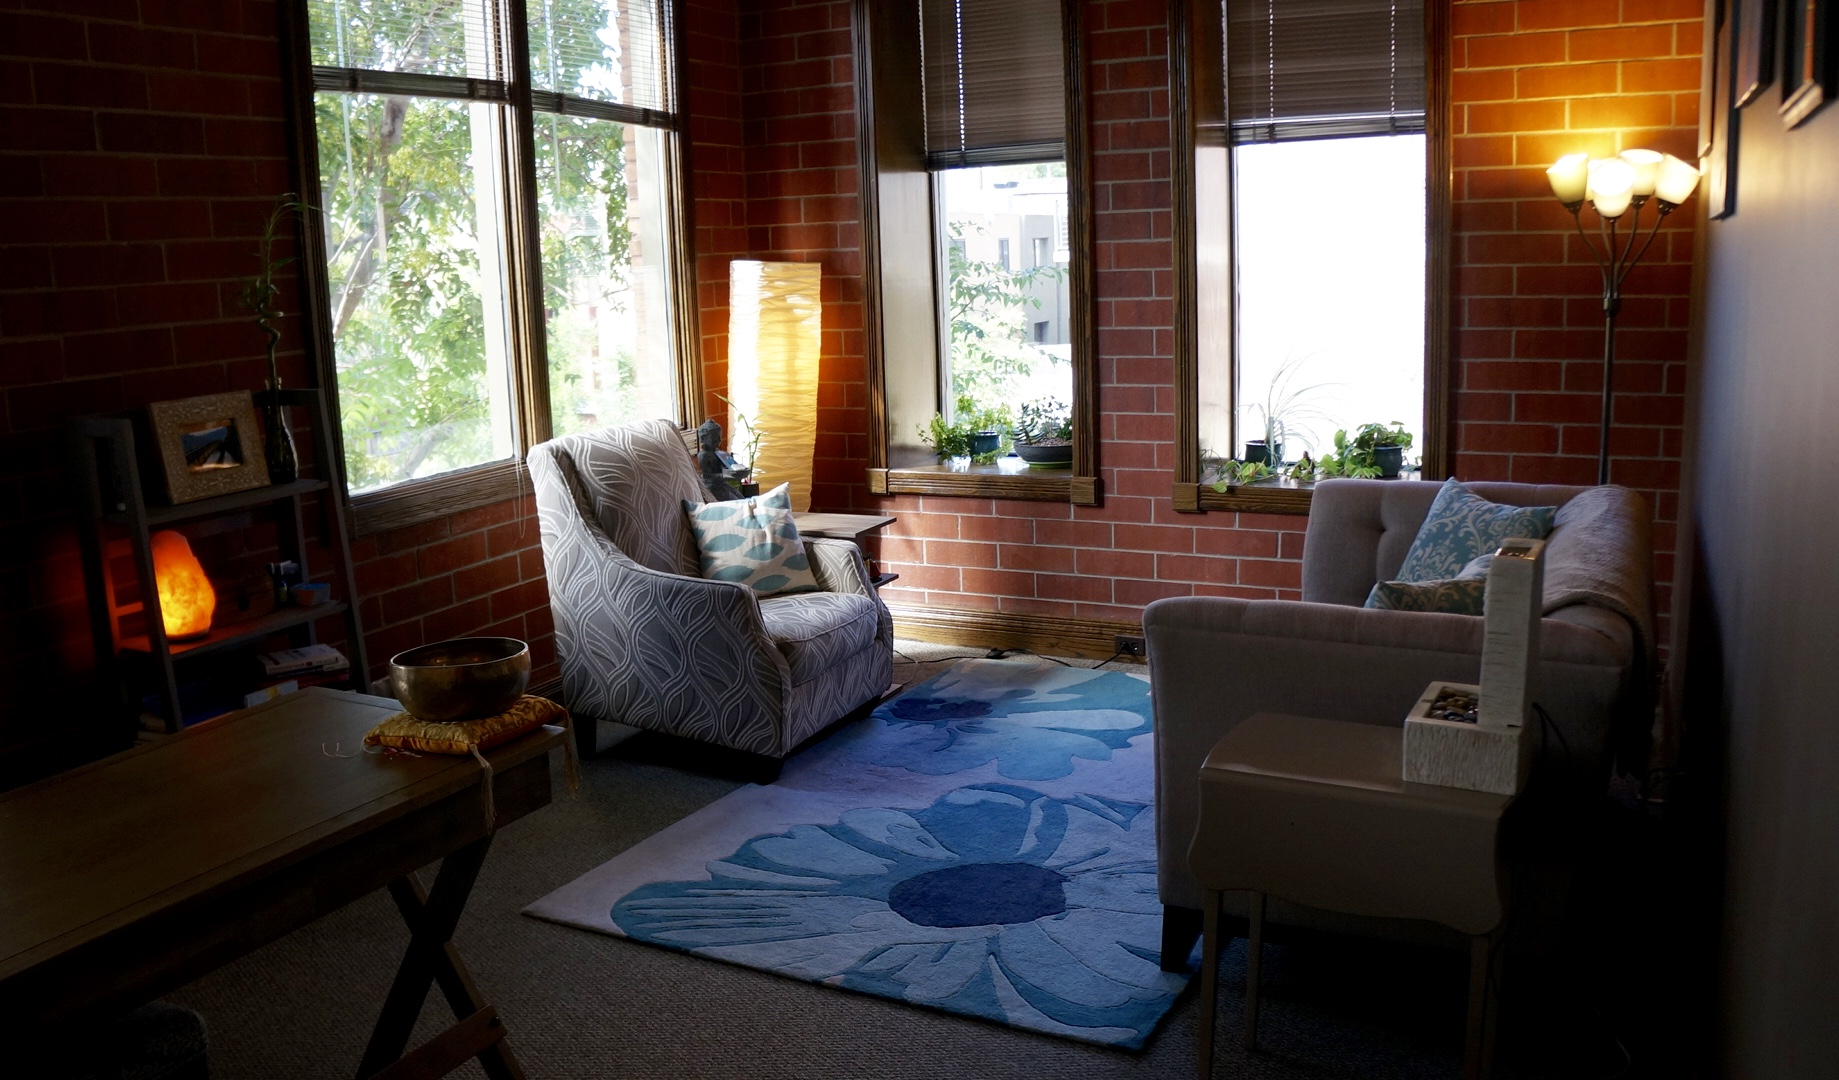 Therapy room with vaulted ceilings